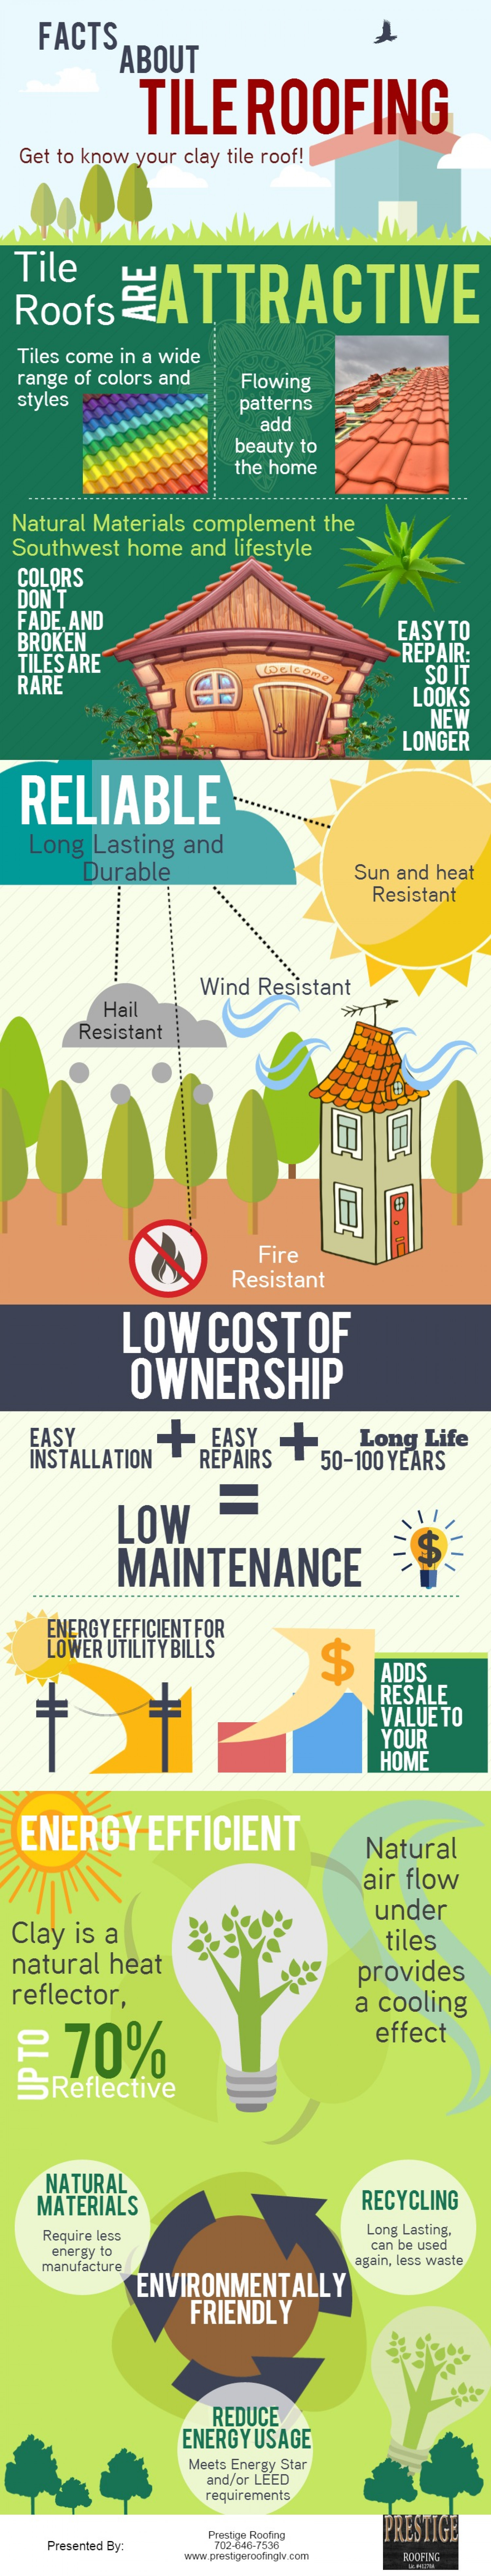 Facts About Tile Roofing  Infographic